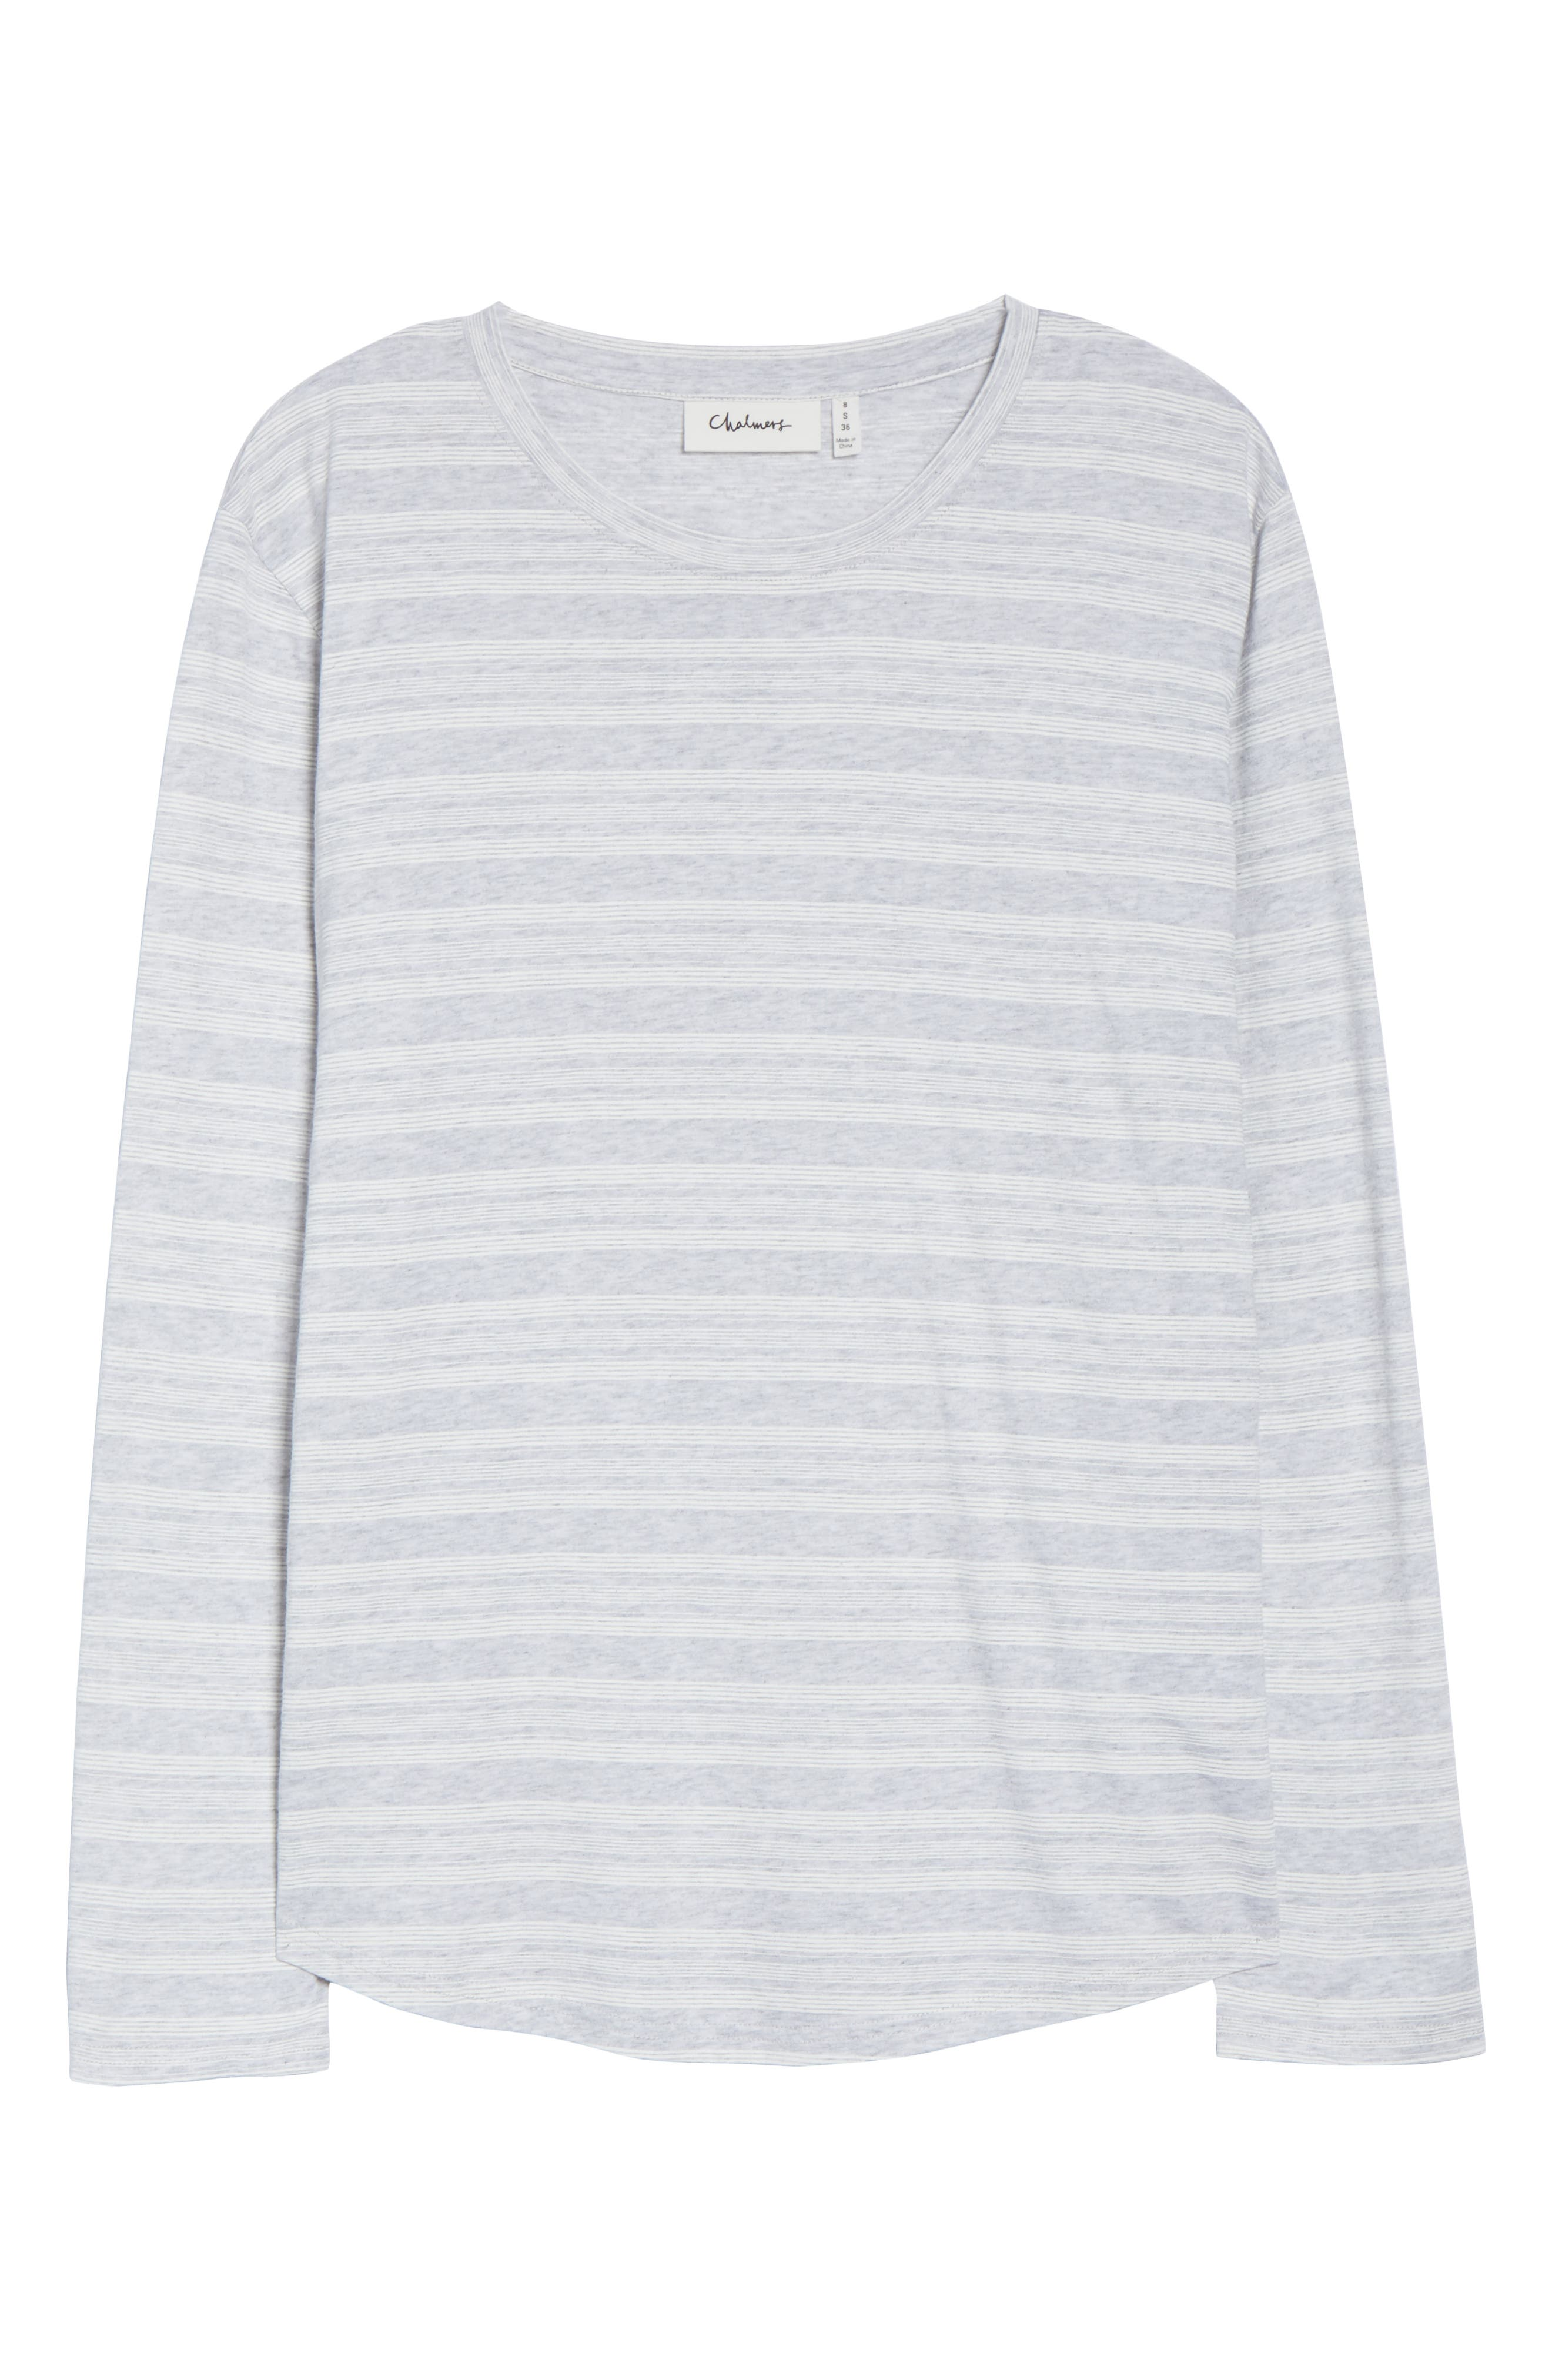 CHALMERS,                             Issy Pajama Top,                             Alternate thumbnail 6, color,                             LOLLY STRIPE WHITE